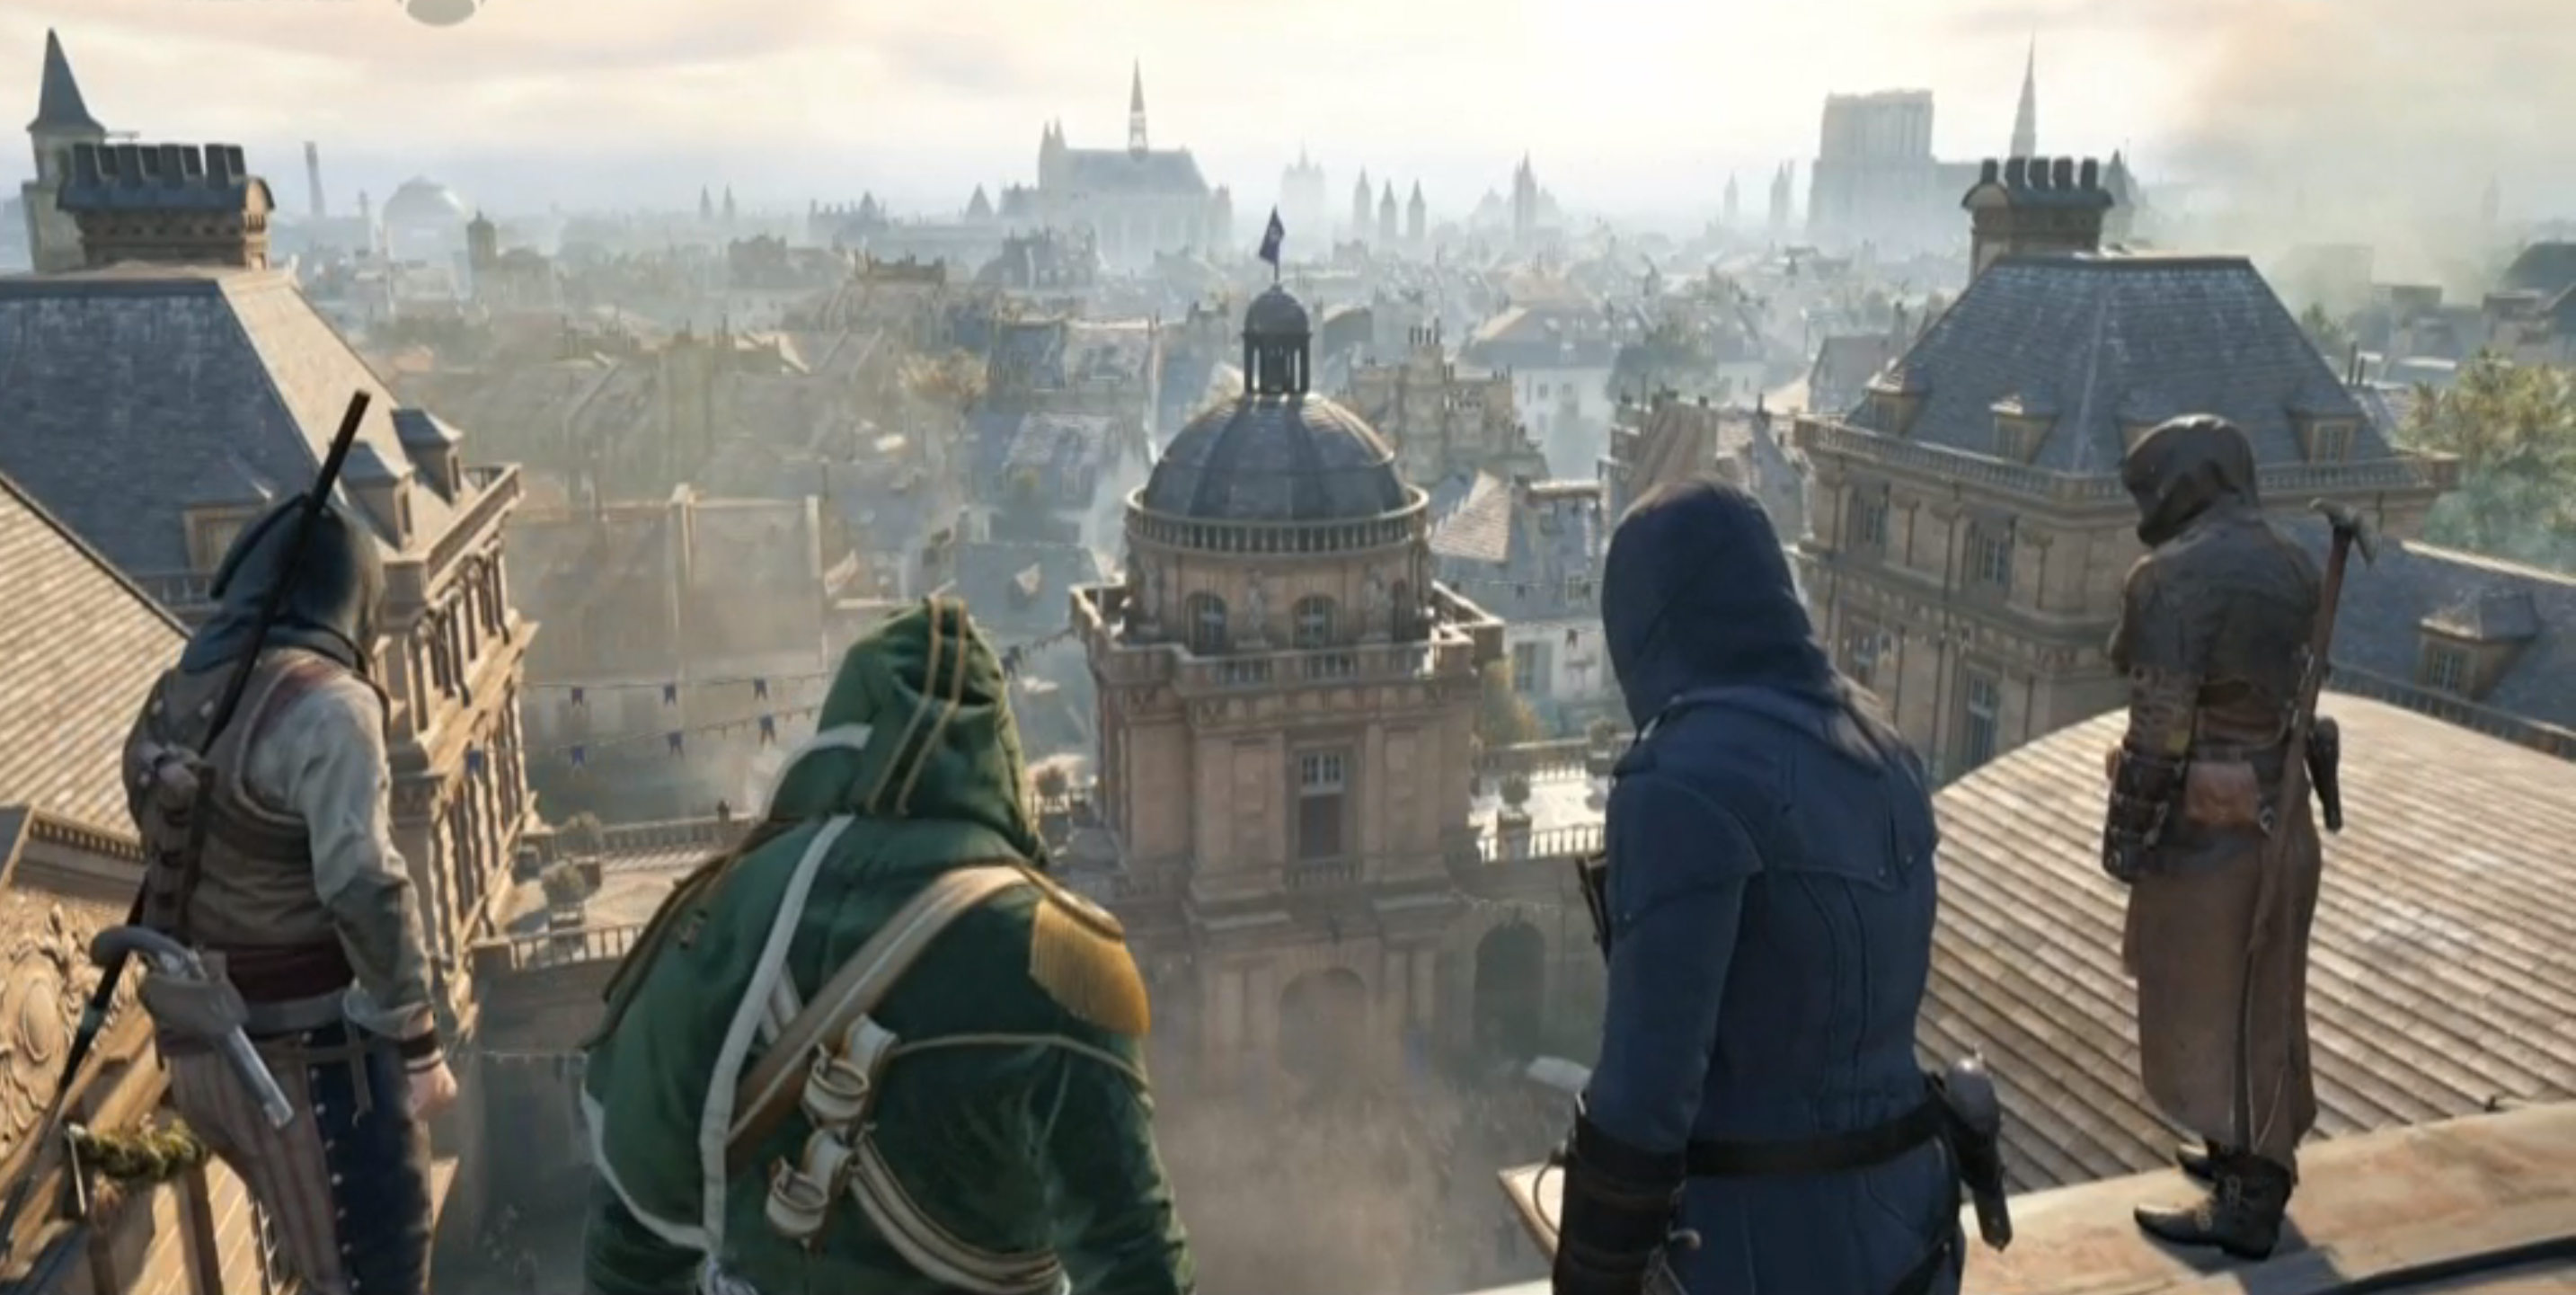 E3 2014 Reveals Story Co-Op for Assassin's Creed: Unity ...